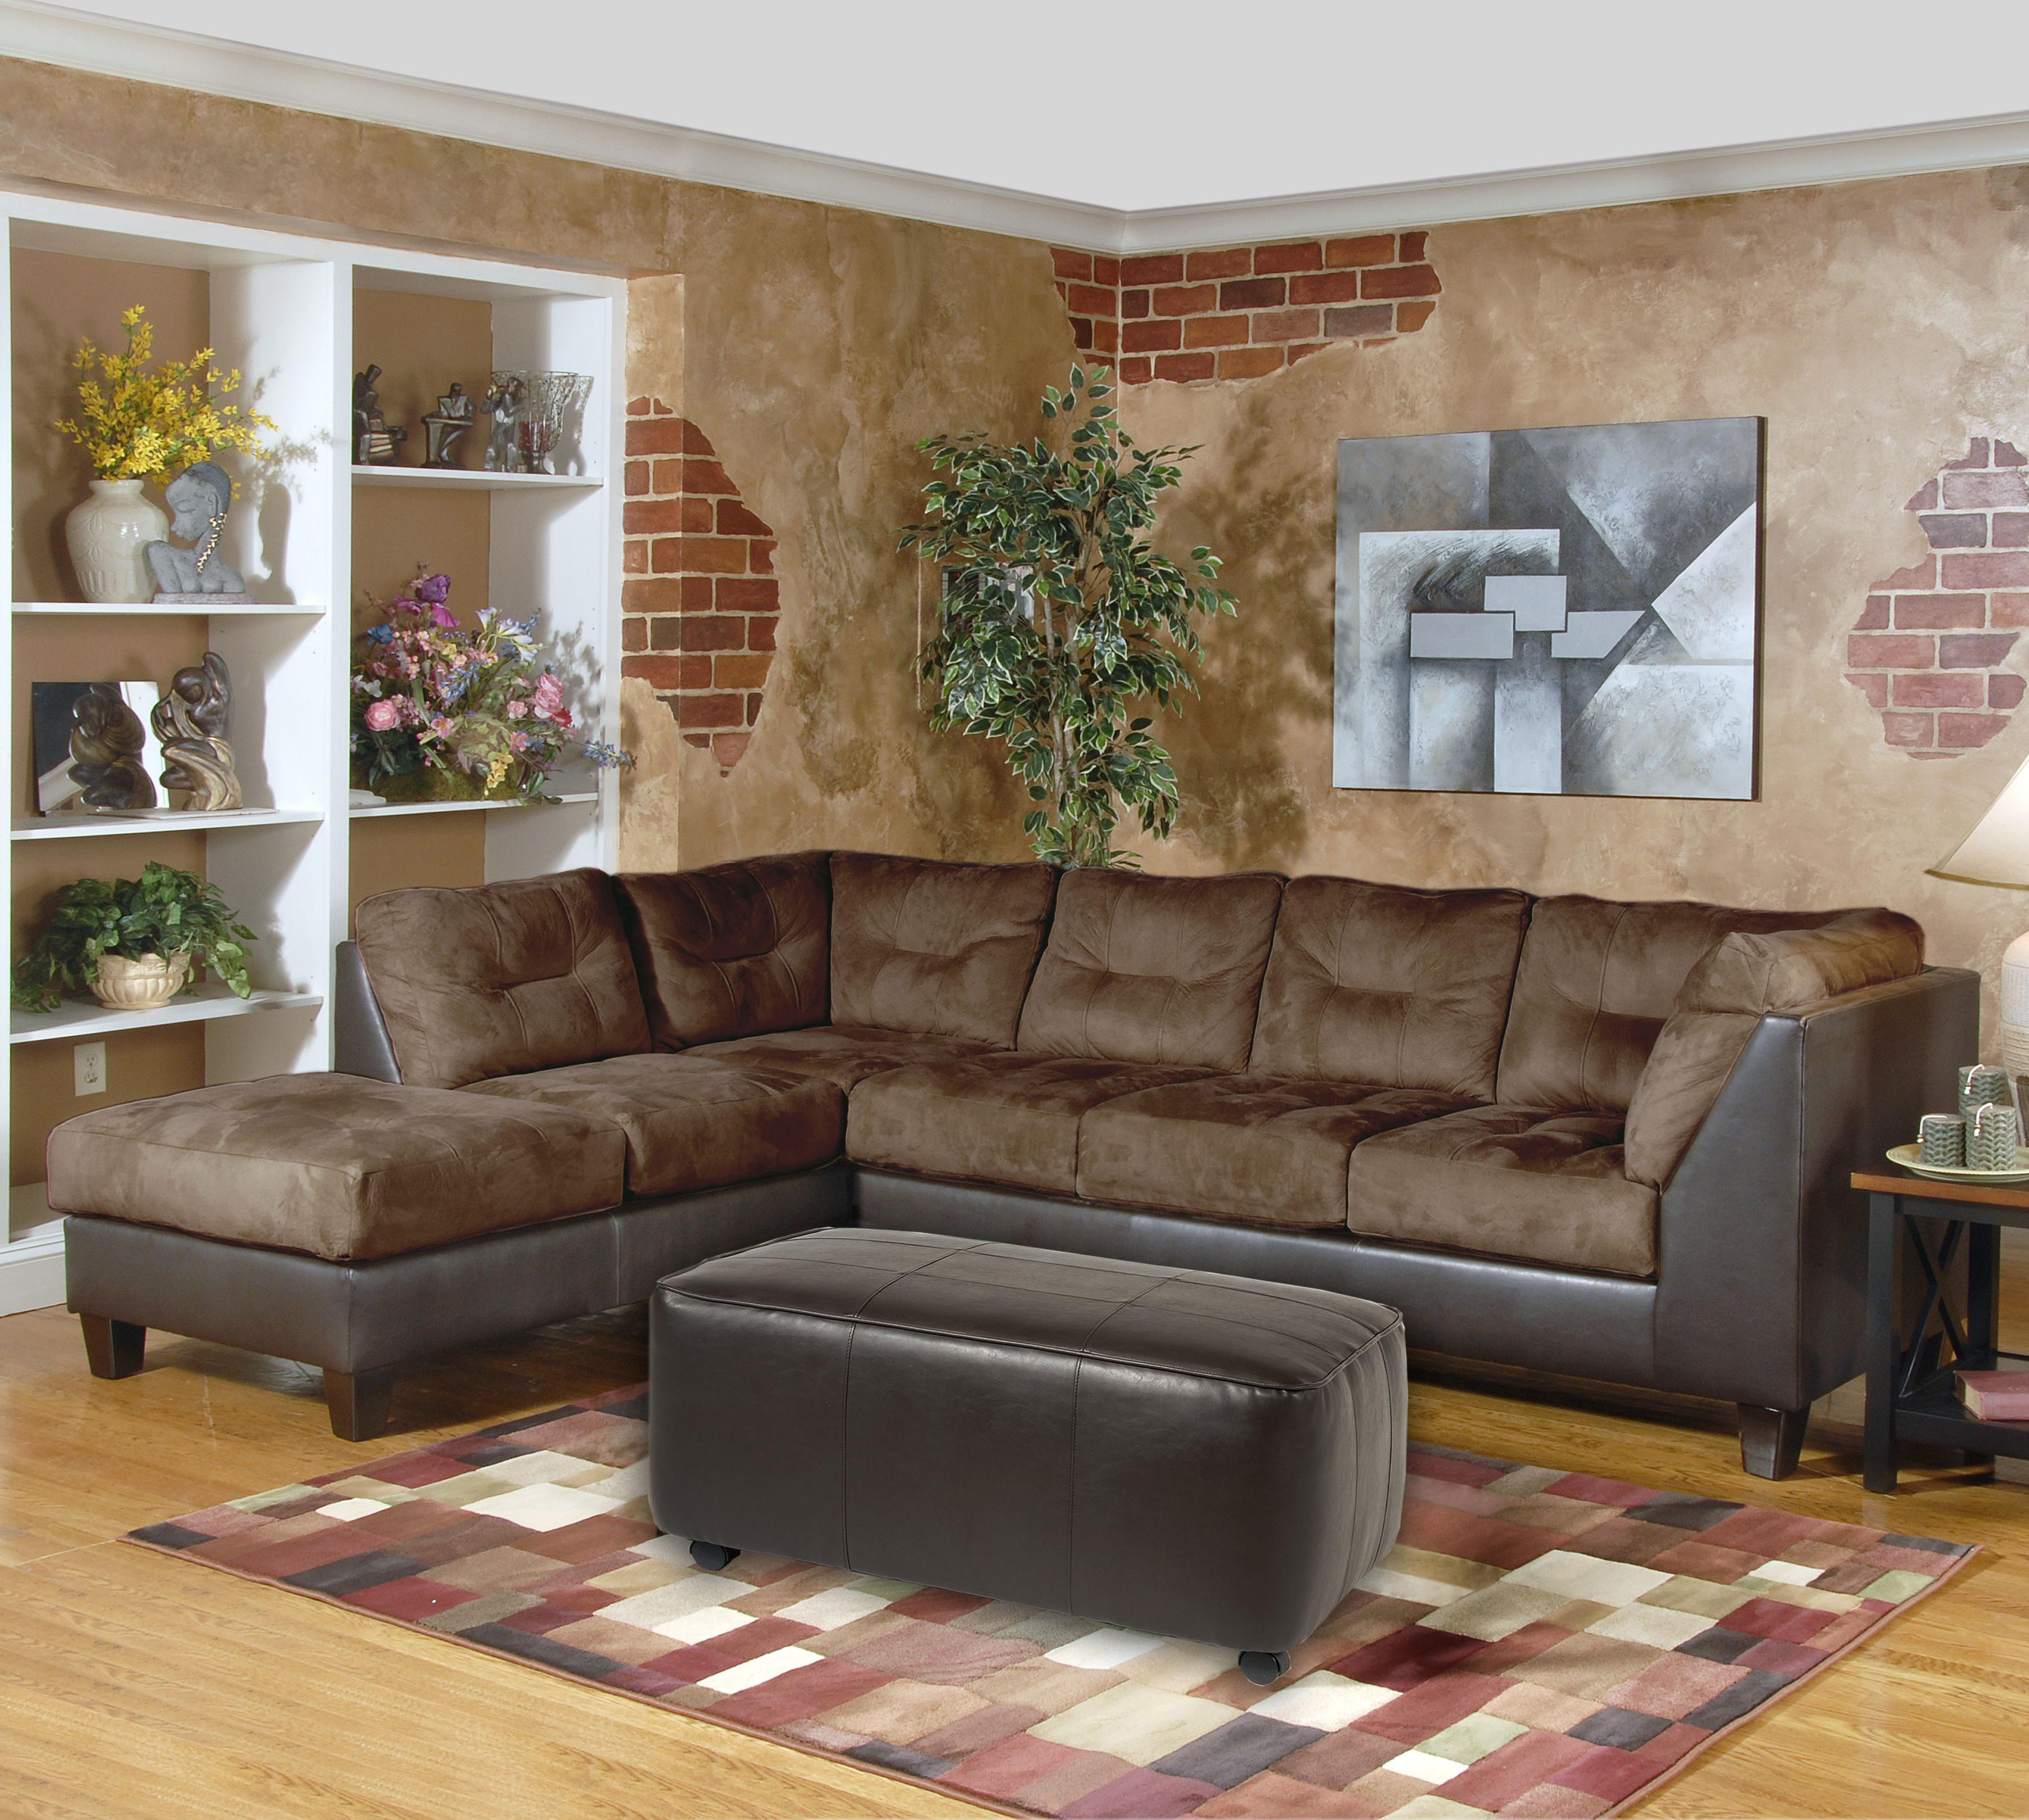 2550 Series Sectional Sofa by Serta Upholstery by Hughes Furniture at Rooms for Less